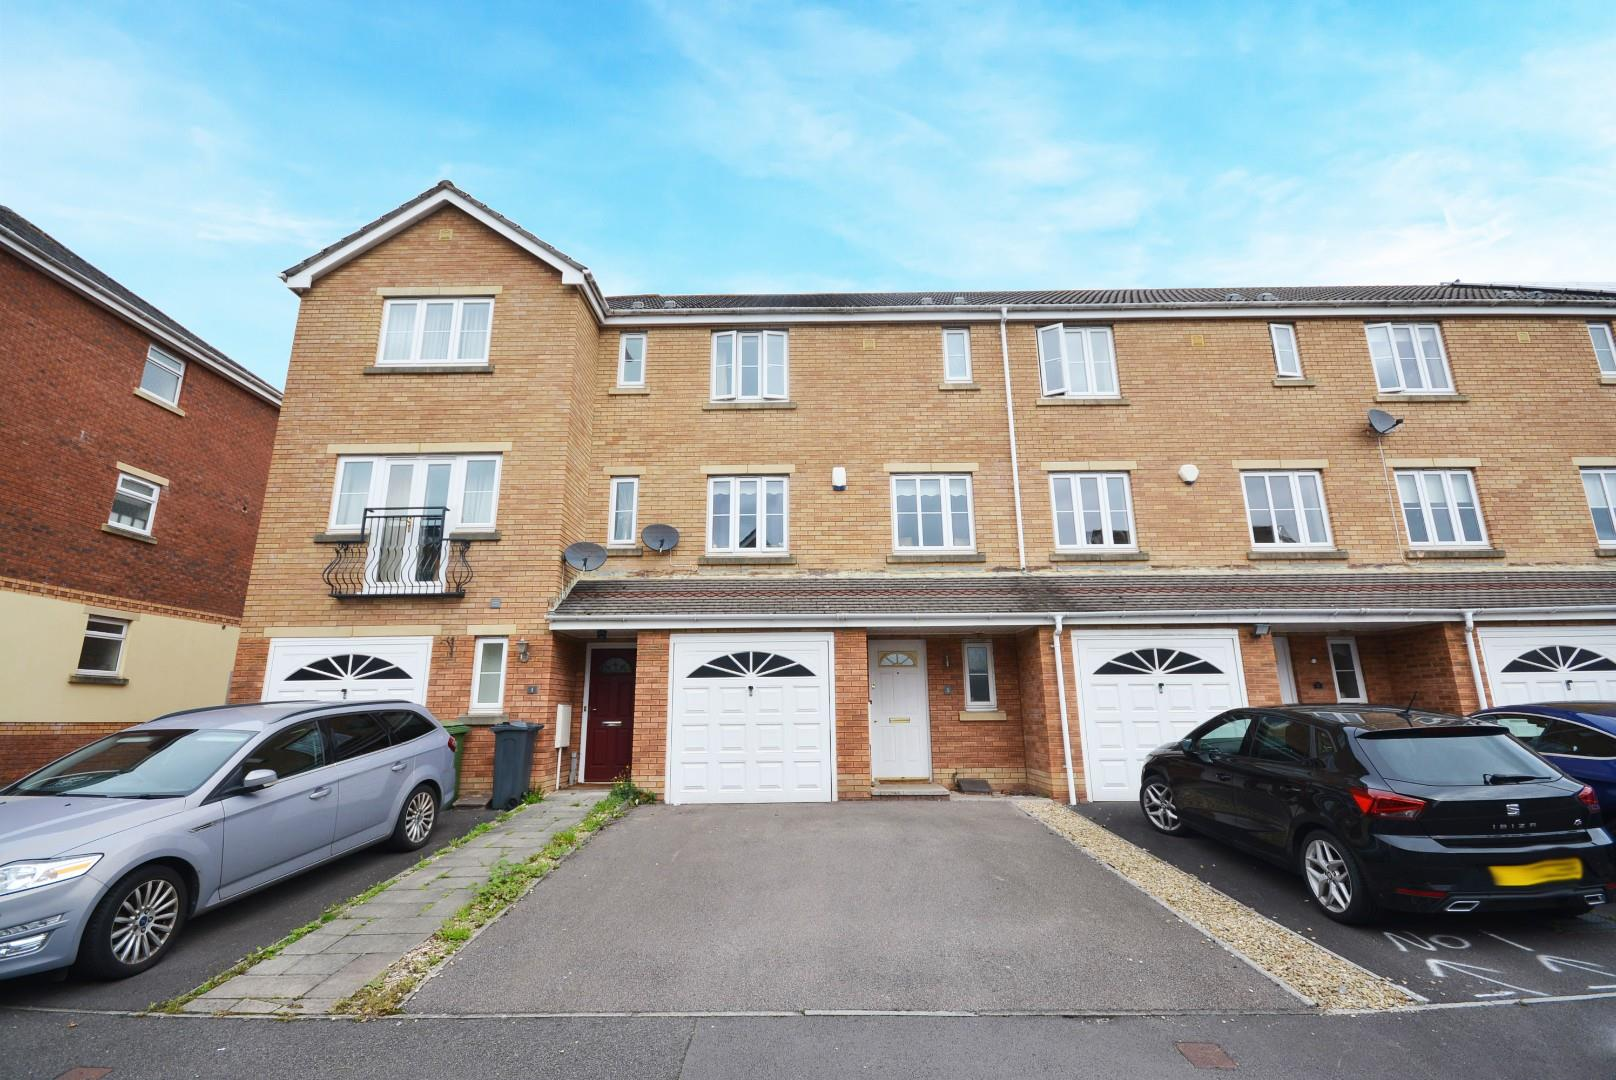 3 bed detached house for sale in Enbourne Drive, Cardiff 0